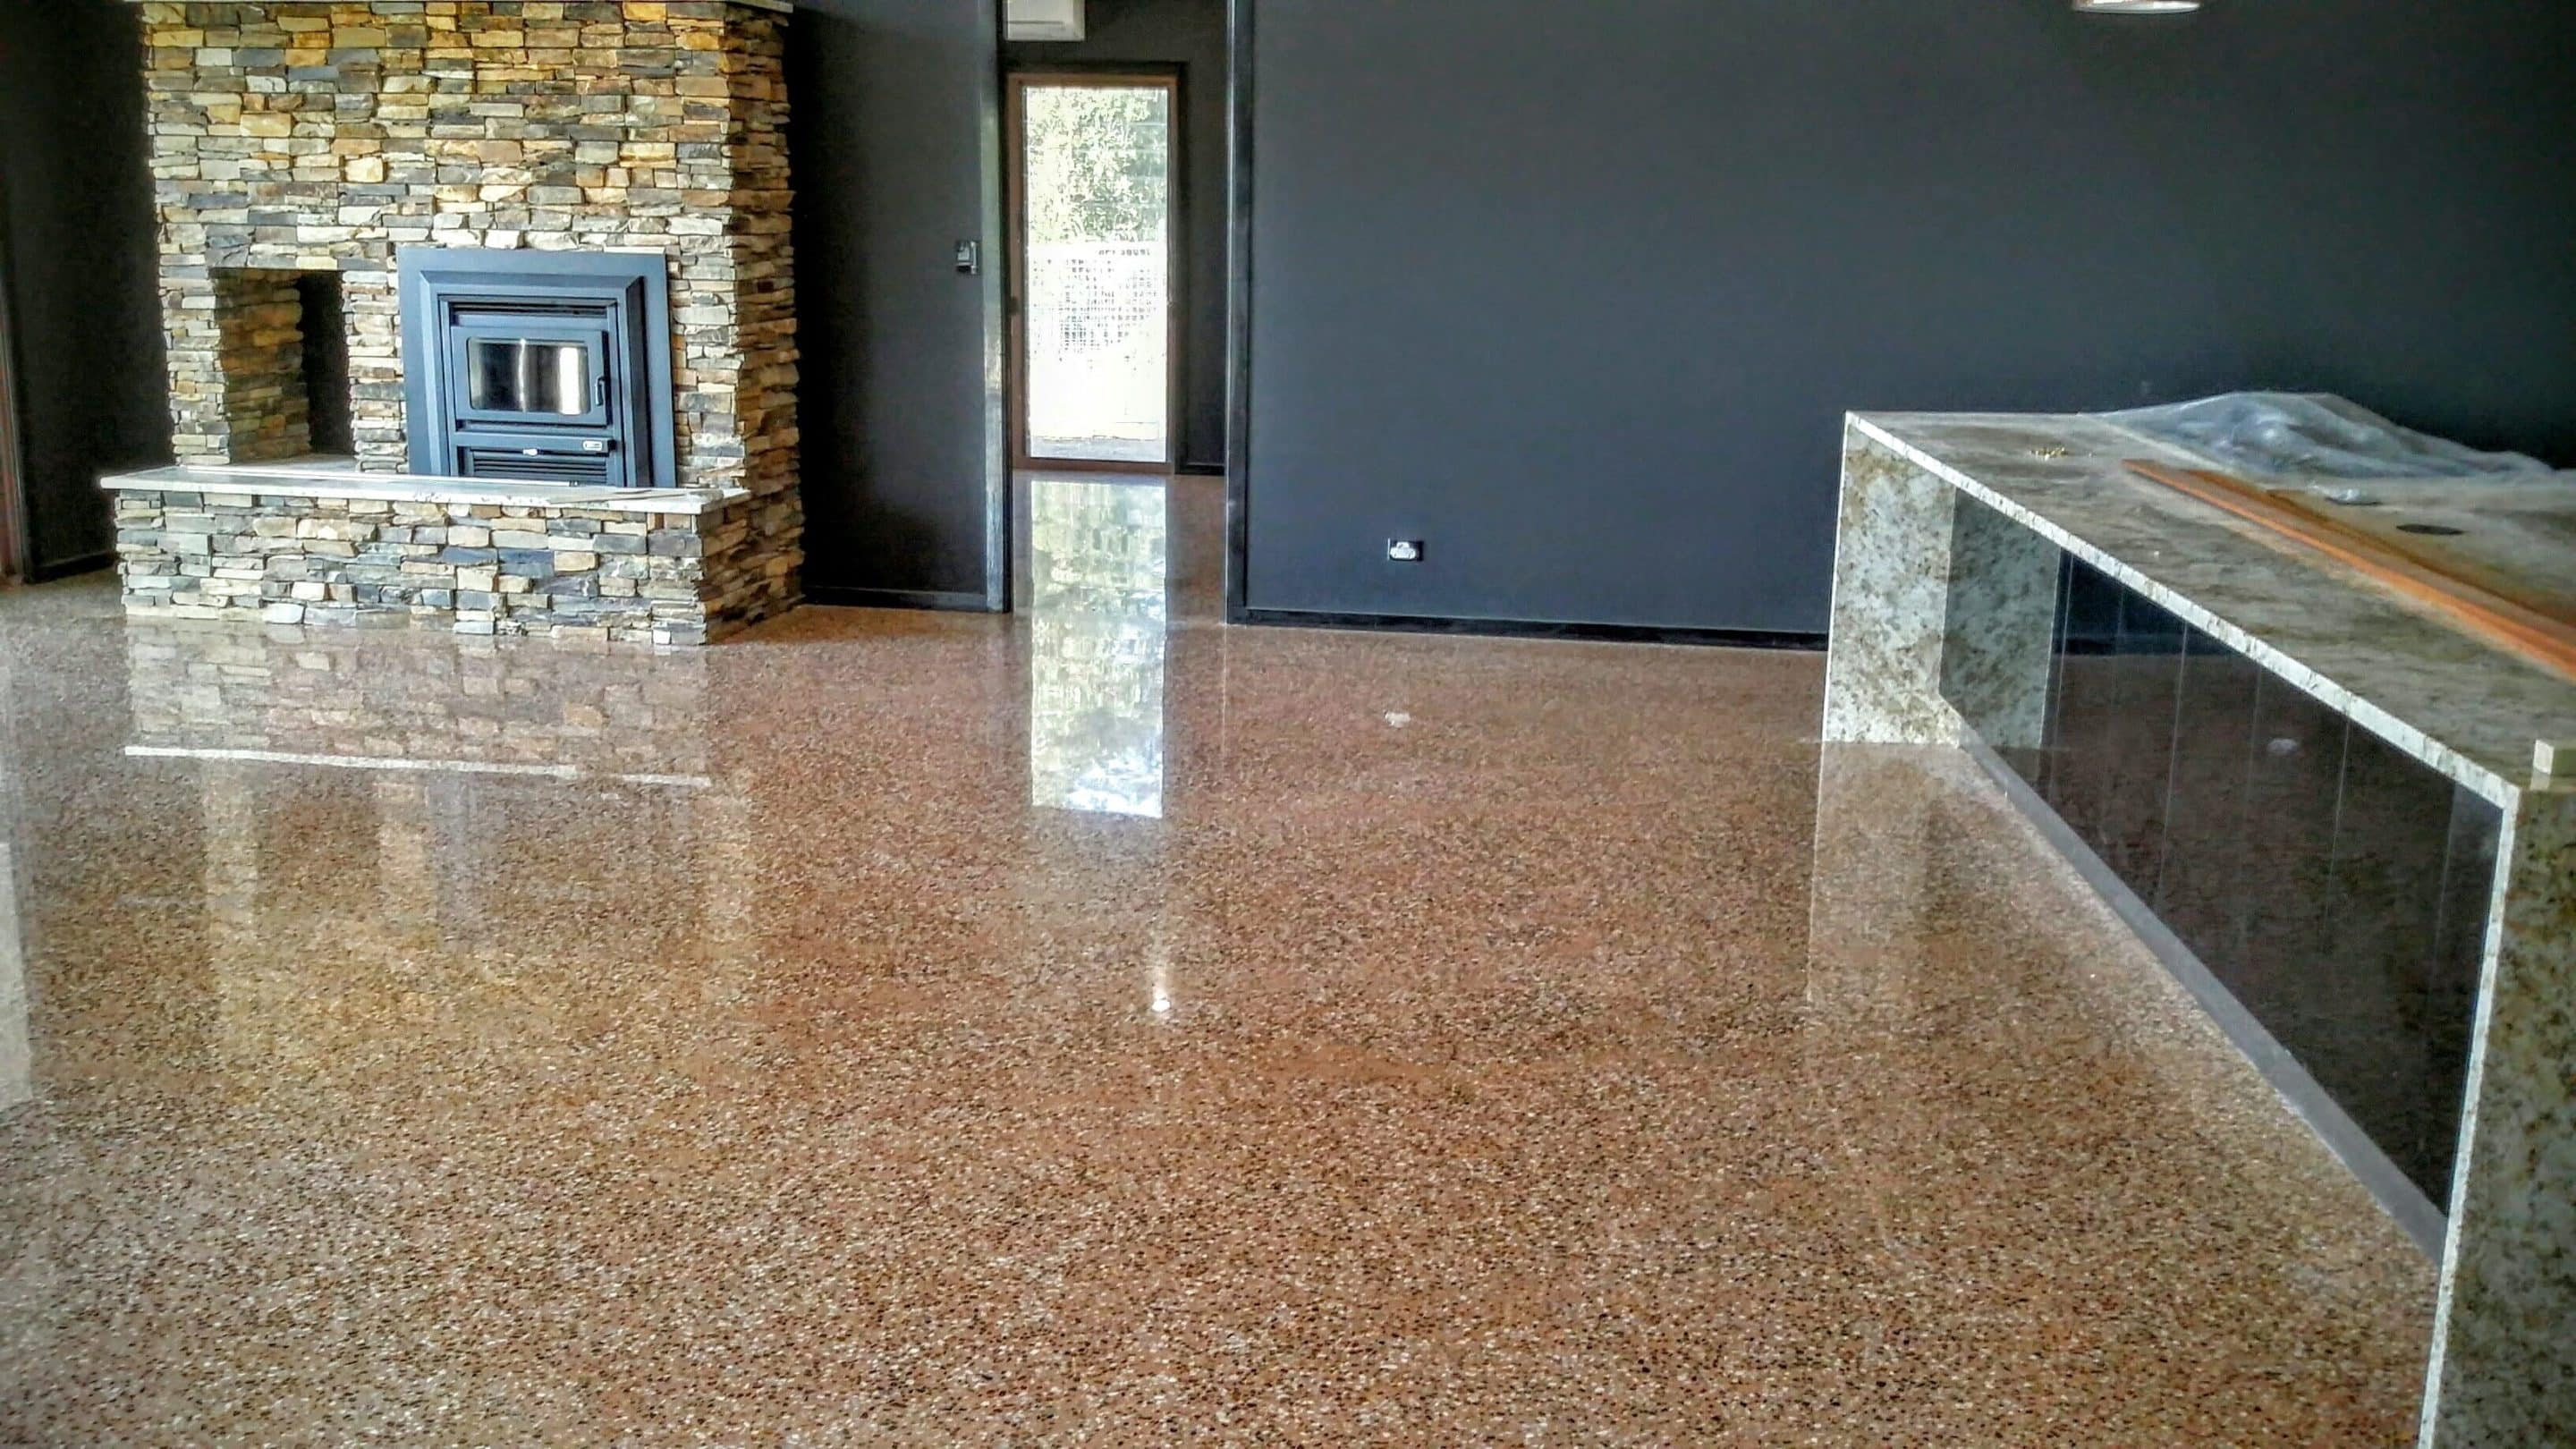 Polished Concrete Floors Sunshine Coast – Proficient Services For Your Home